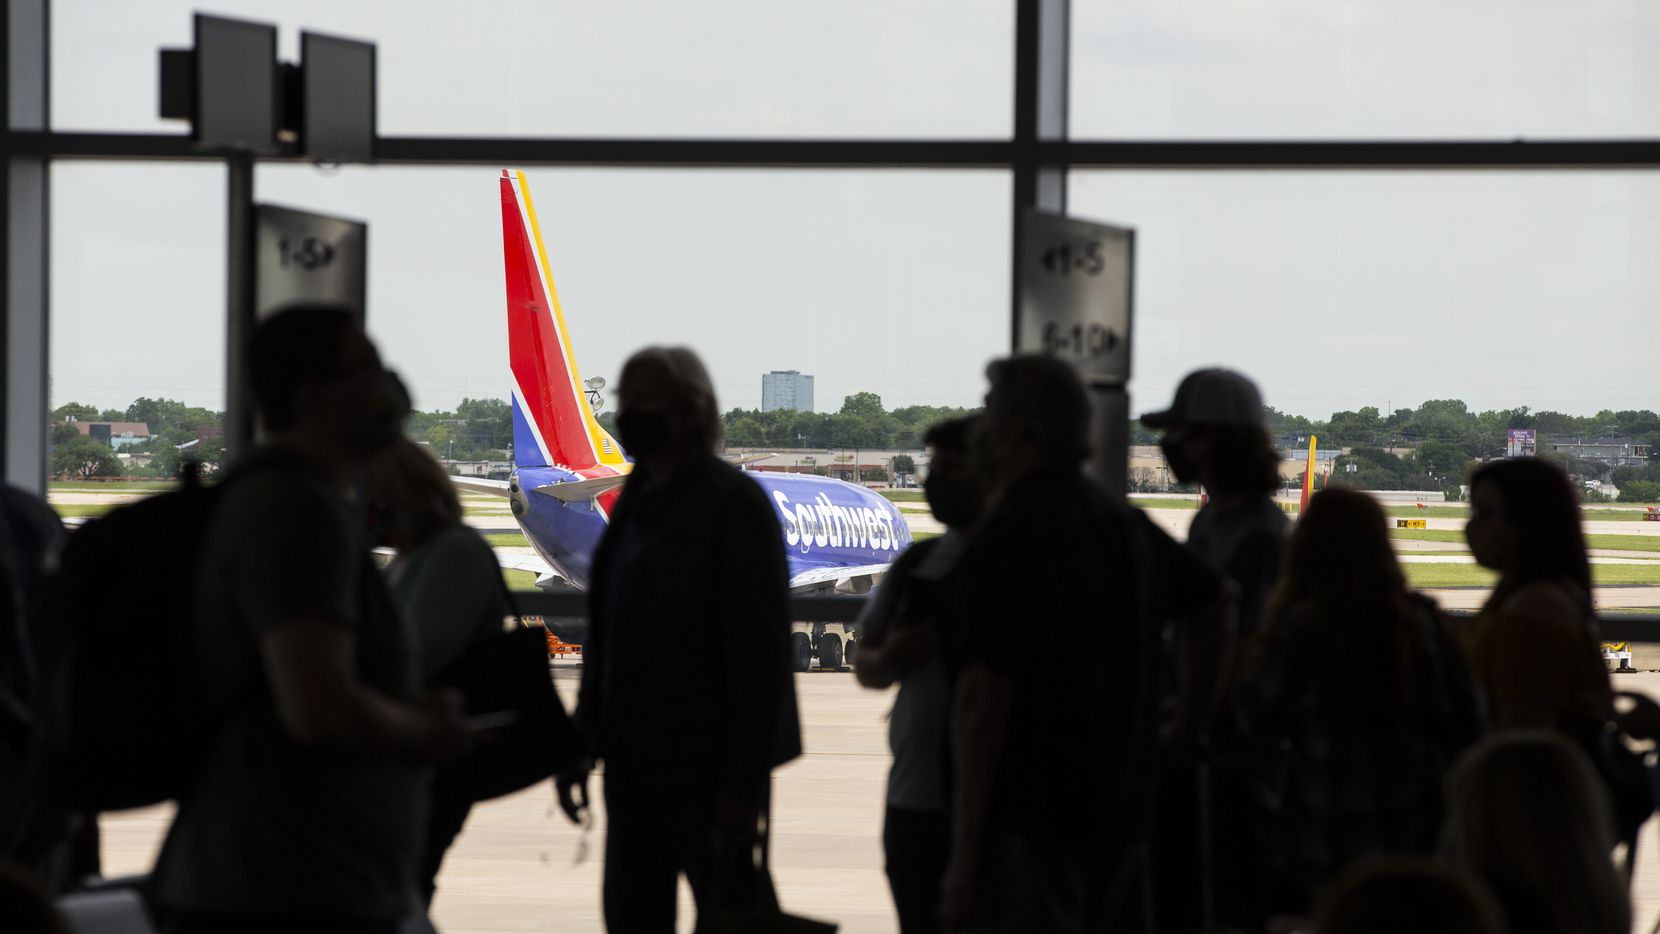 Passengers board a flight to New Orleans at Dallas Love Field in Dallas, Wednesday, May 19, 2021. (Brandon Wade/Special Contributor)